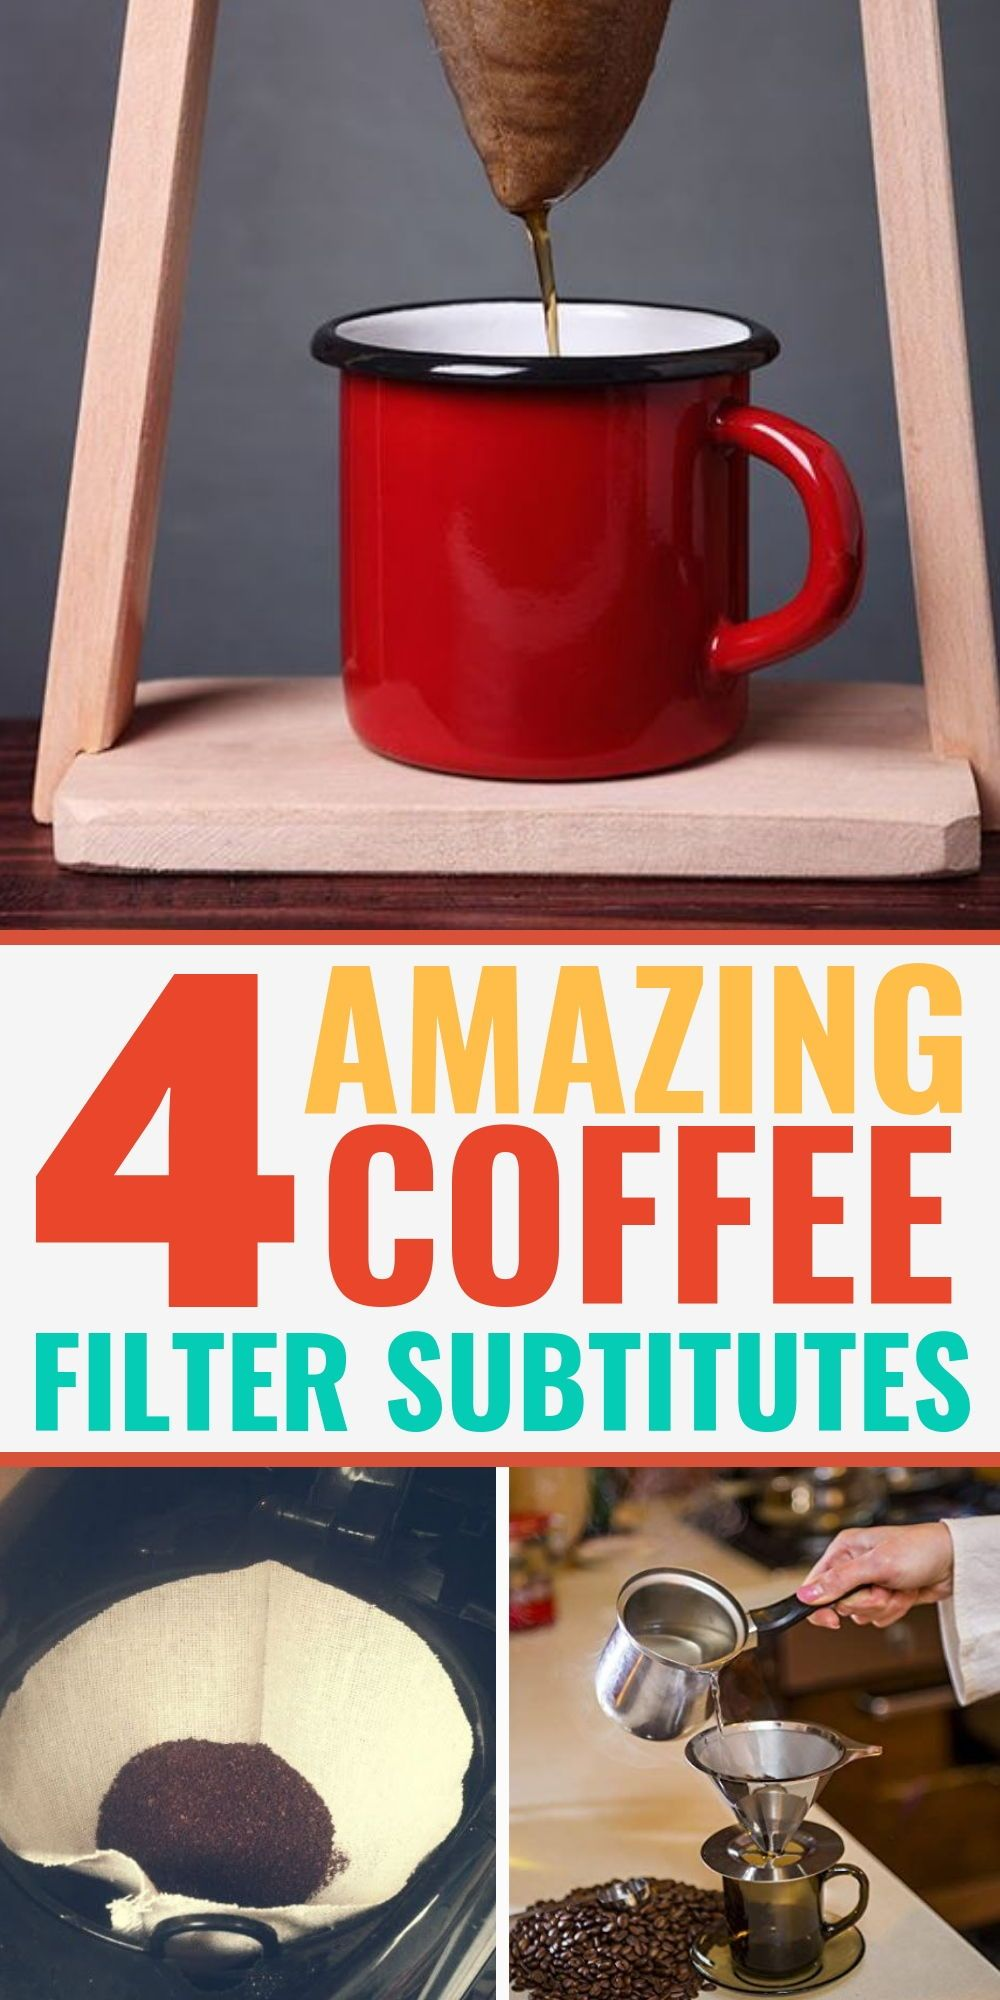 5 Amazing Coffee Filter Substitutes Coffee filter